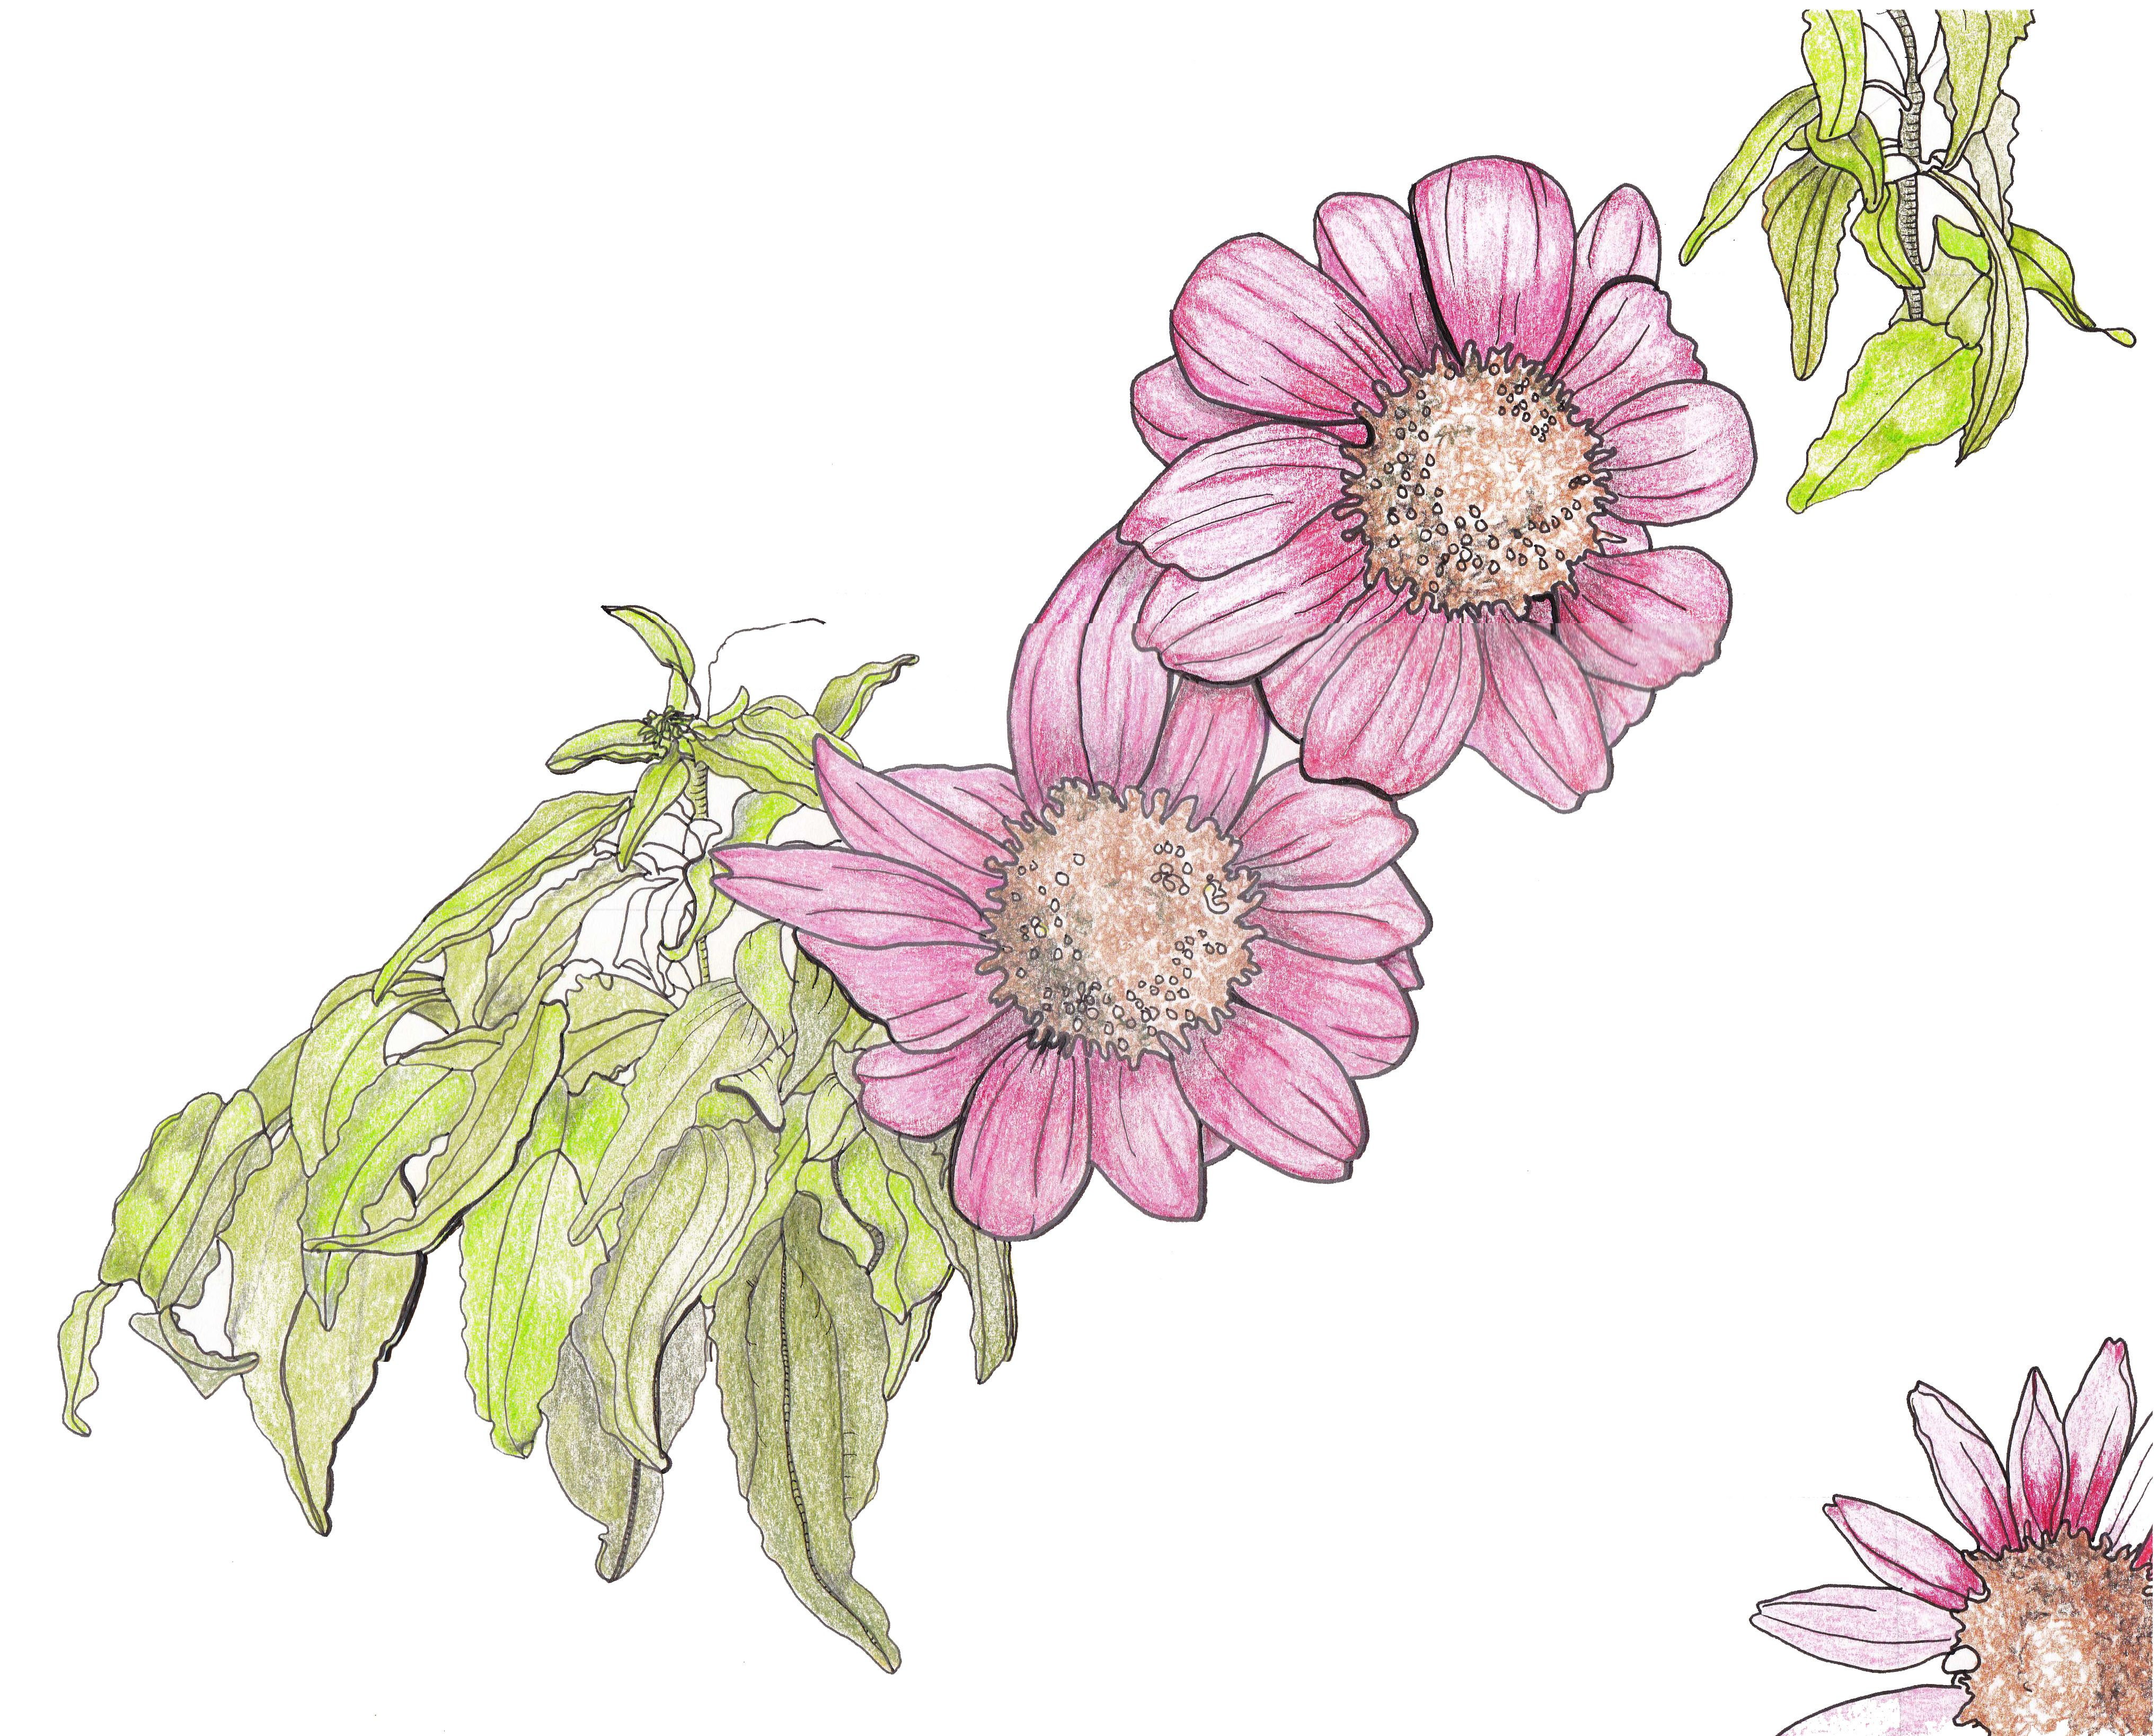 Daisy Flower Line Drawing : Line drawing flowers purple daisies drawings